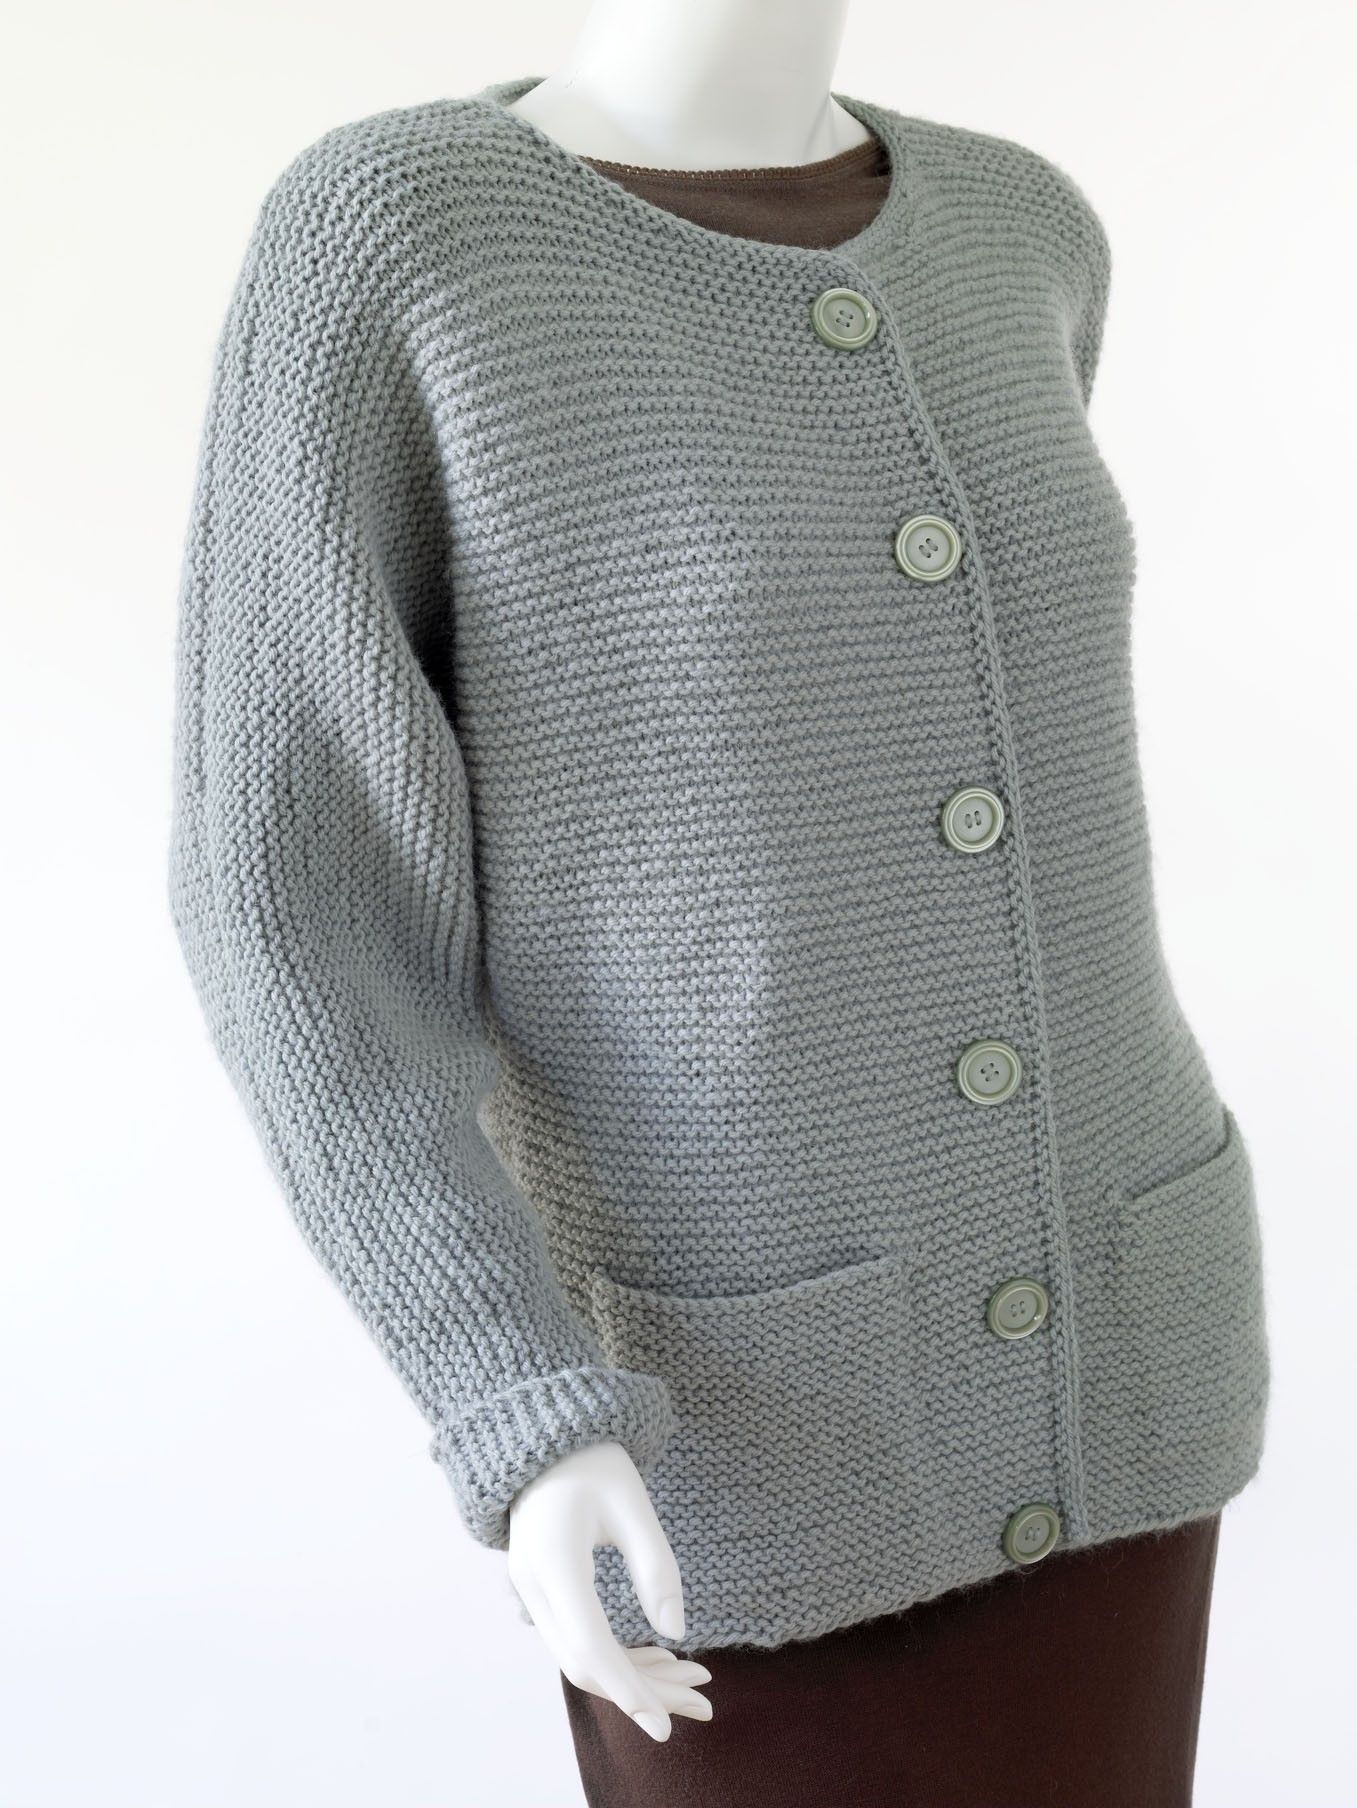 Knit Oh So Simple Cardigan Pattern (Knit) | Knit | Pinterest ...